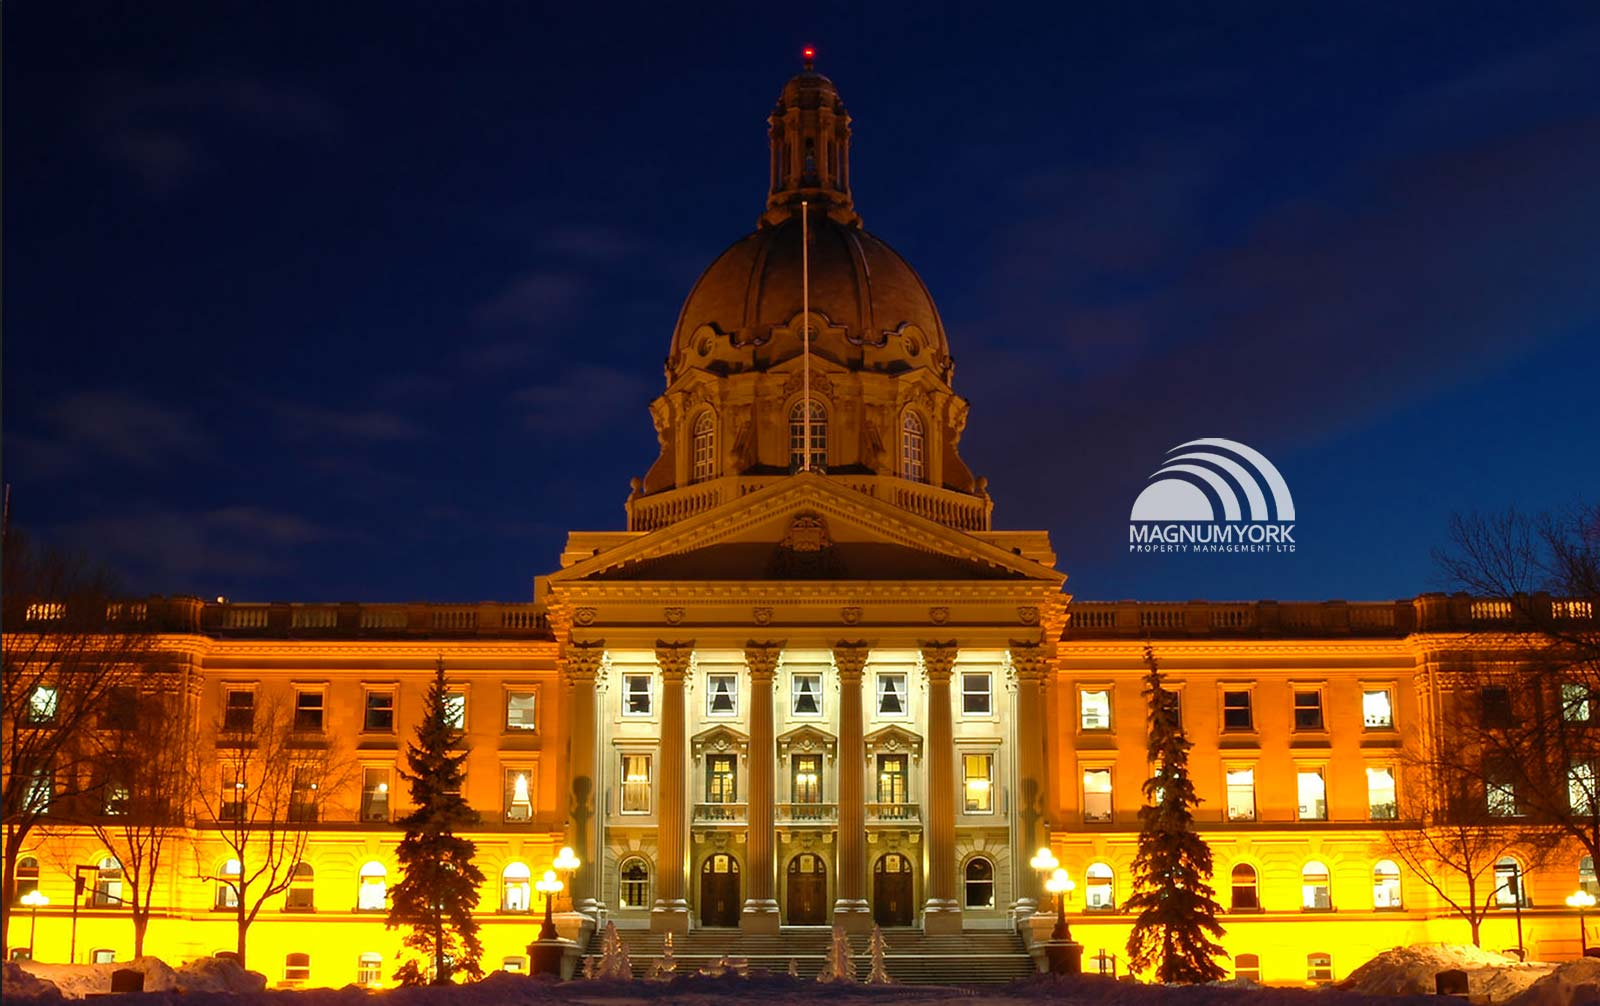 Alberta Legislature Bill 20, The Amendment To Real Estate Act, 2020